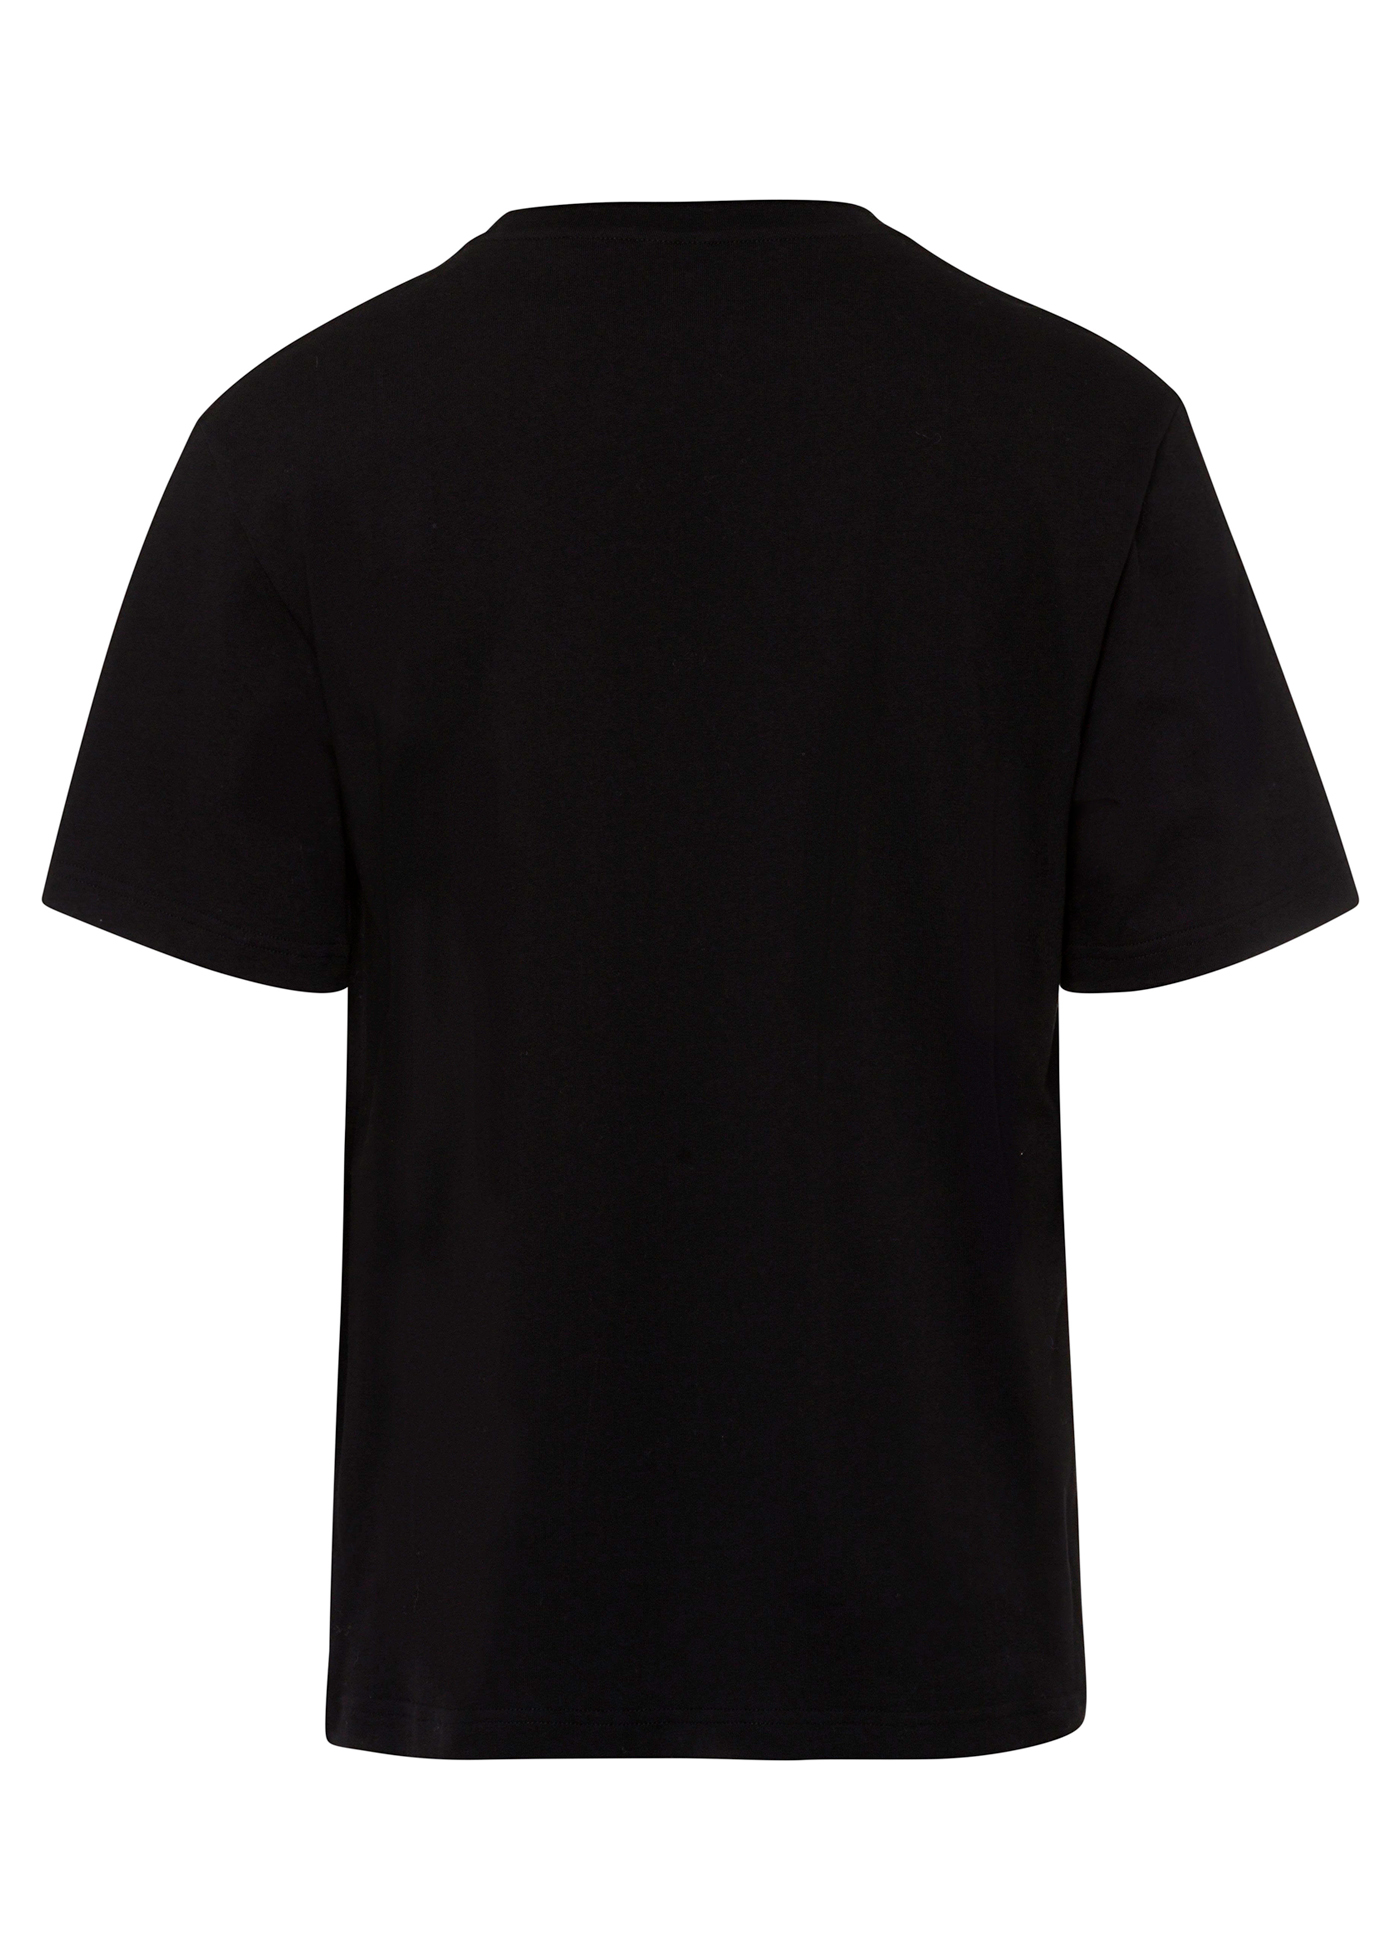 lyell ss t-shirt image number 1